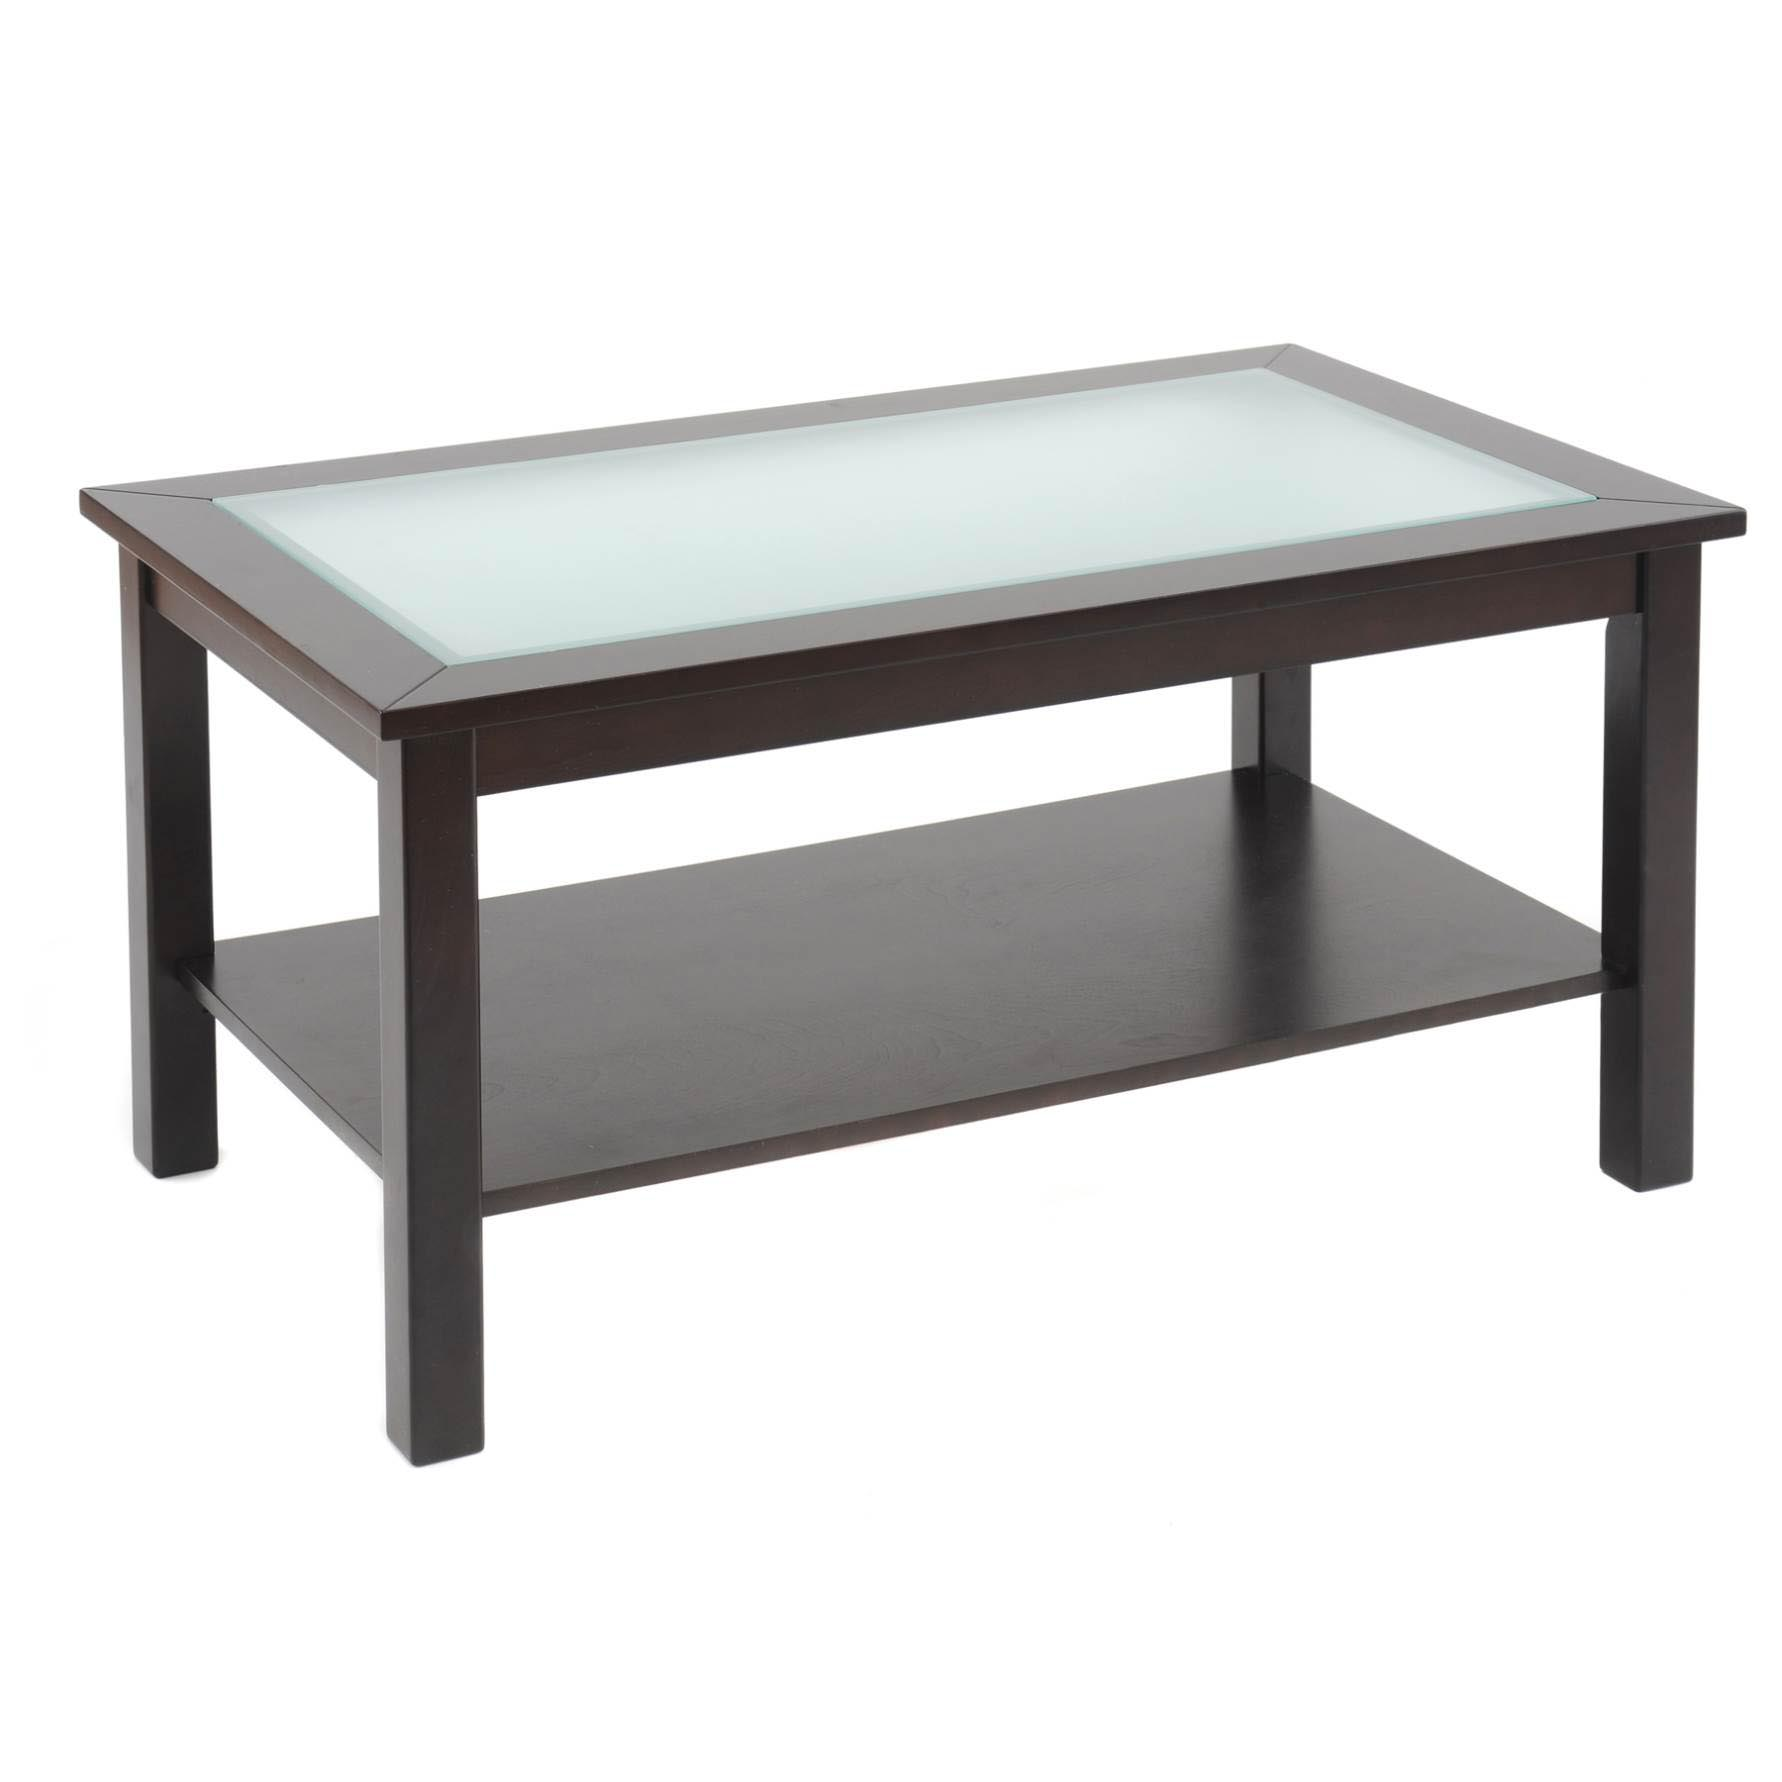 Glass display coffee table ikea coffee table design ideas for Coffee tables glass top